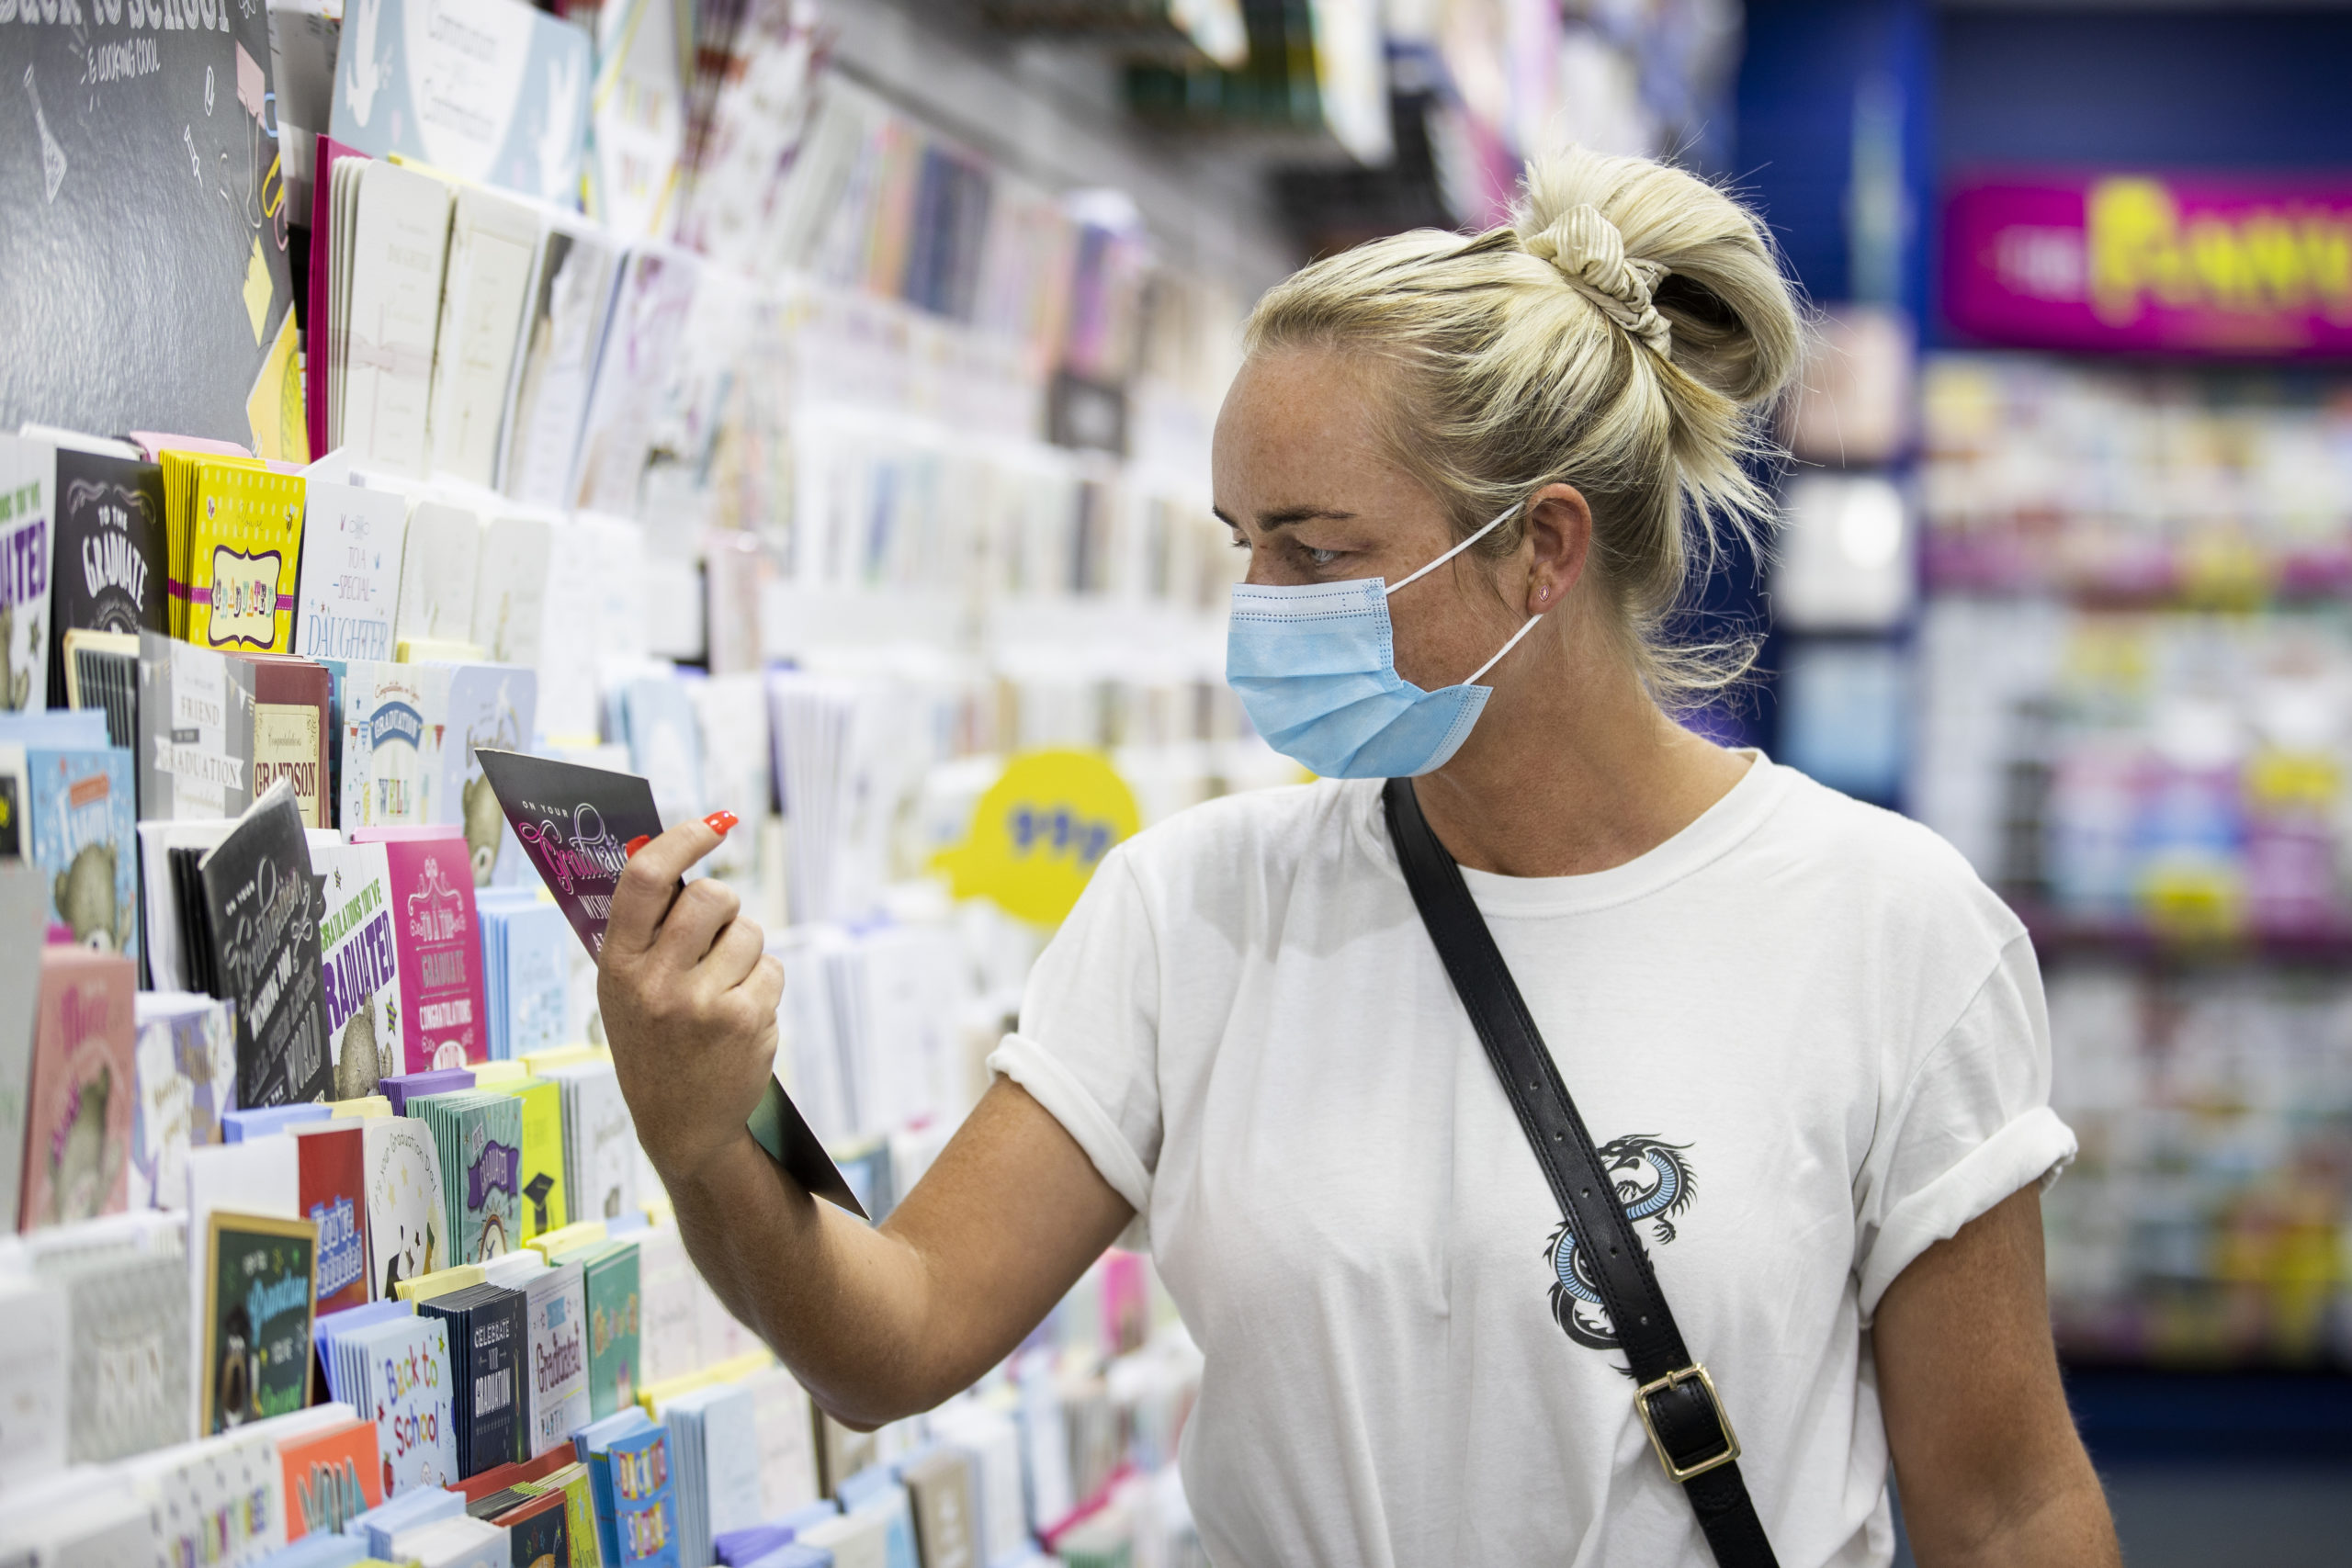 Almost half of UK shoppers have said they believe the coronavirus pandemic will have a permanent impact on their habits, according to new research